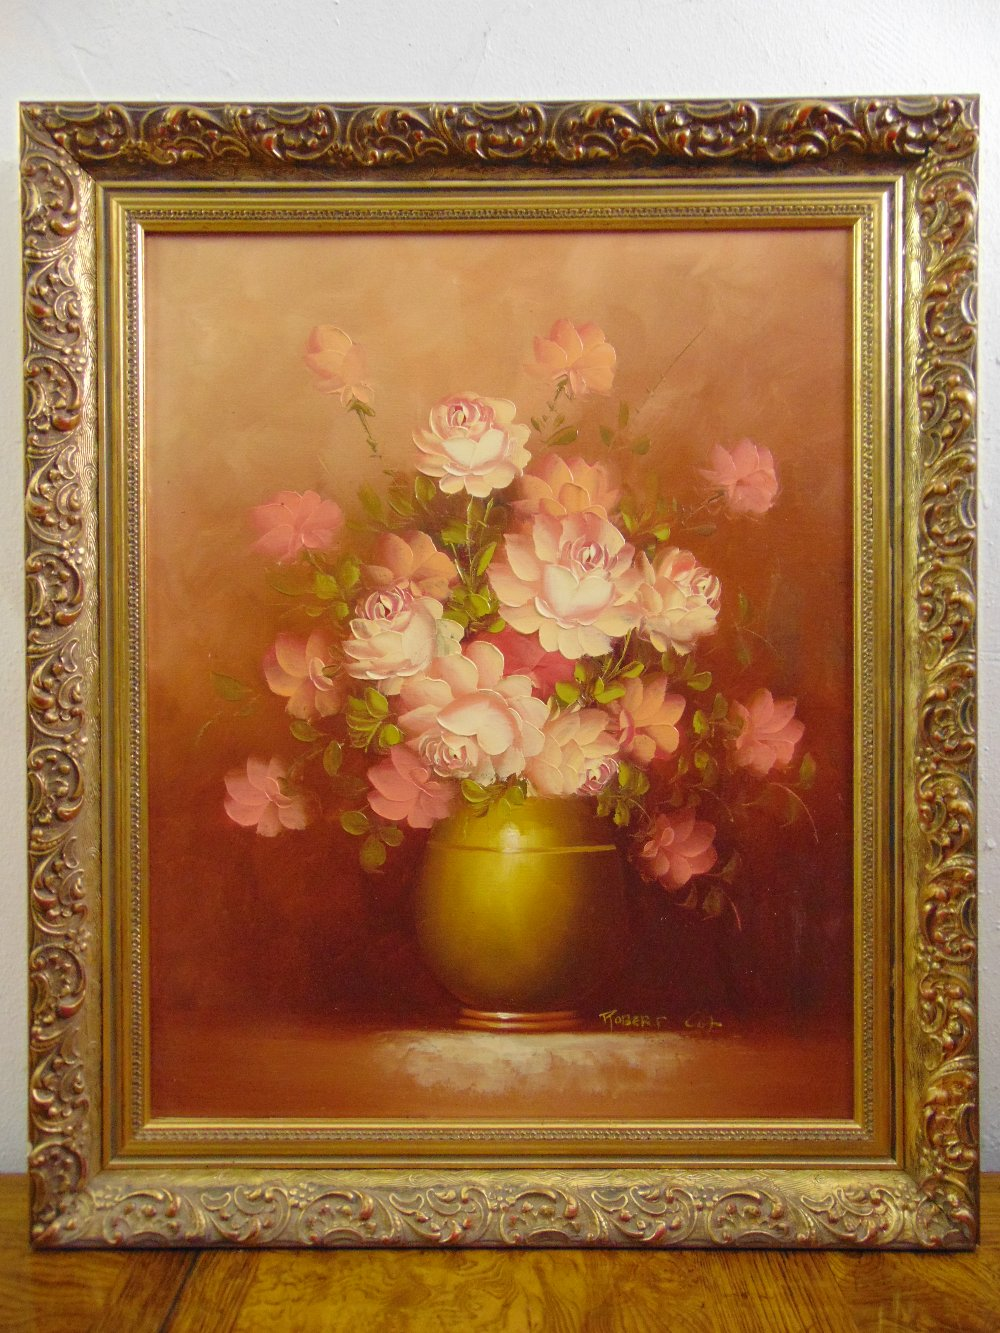 Lot 98 - Robert Cox framed oil on canvas still life of flowers, signed bottom right, 50.5 x 40.5cm